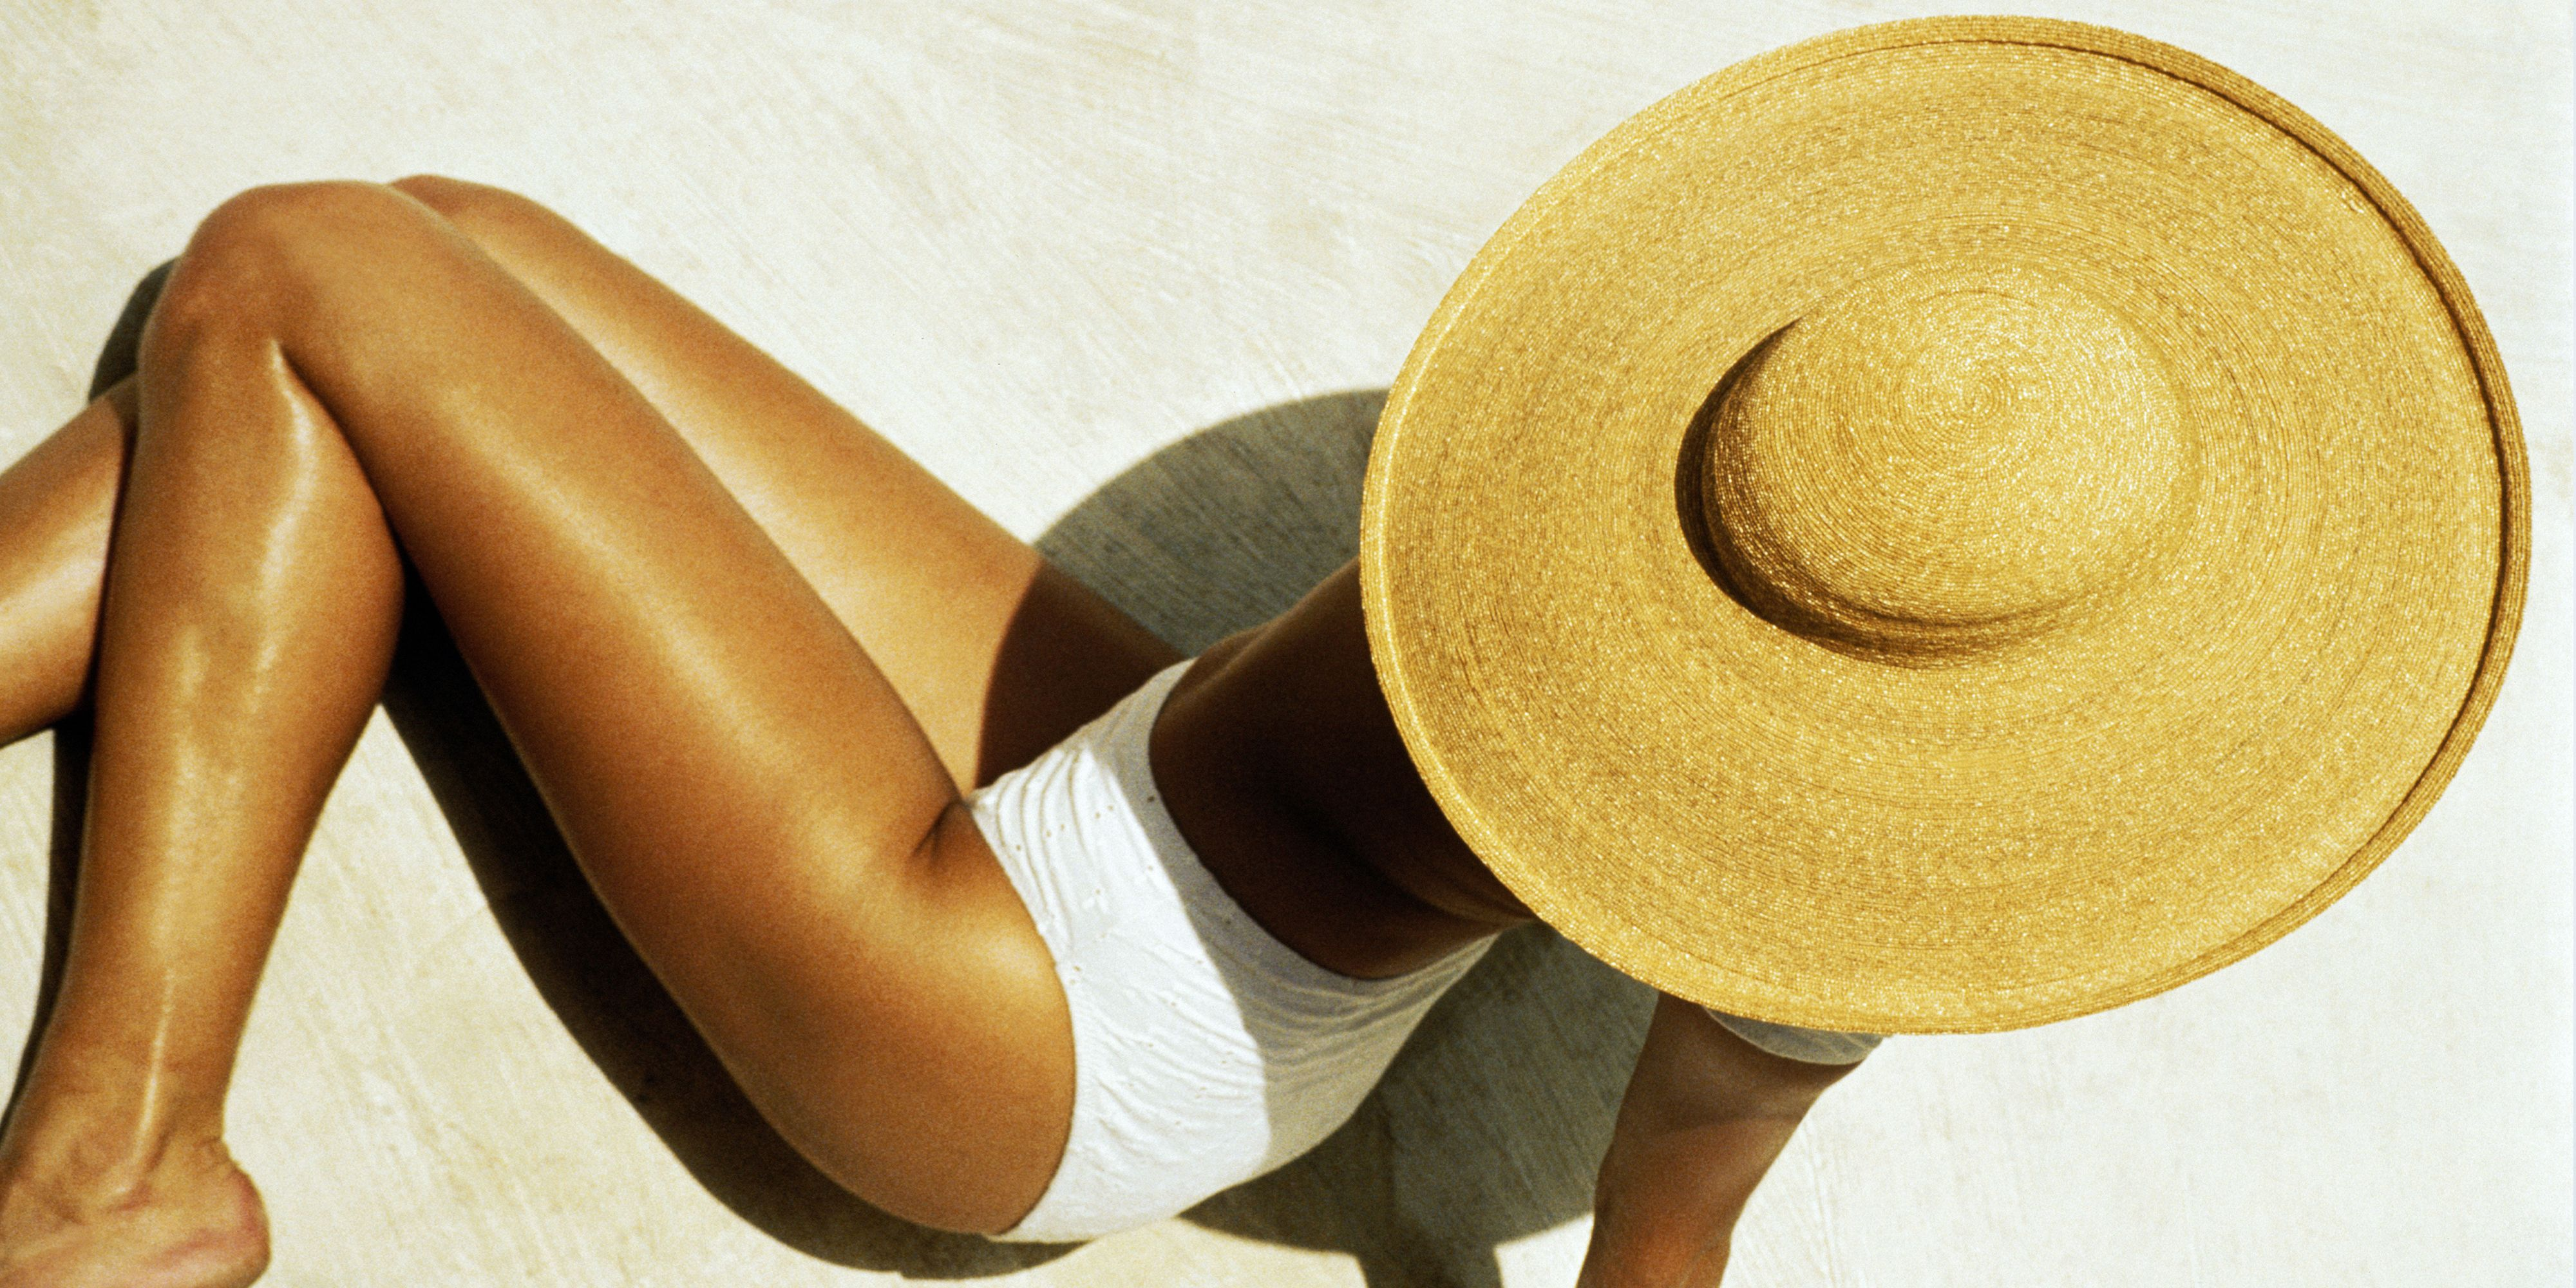 Brazilian waxing at home can i give myself a brazilian wax solutioingenieria Image collections